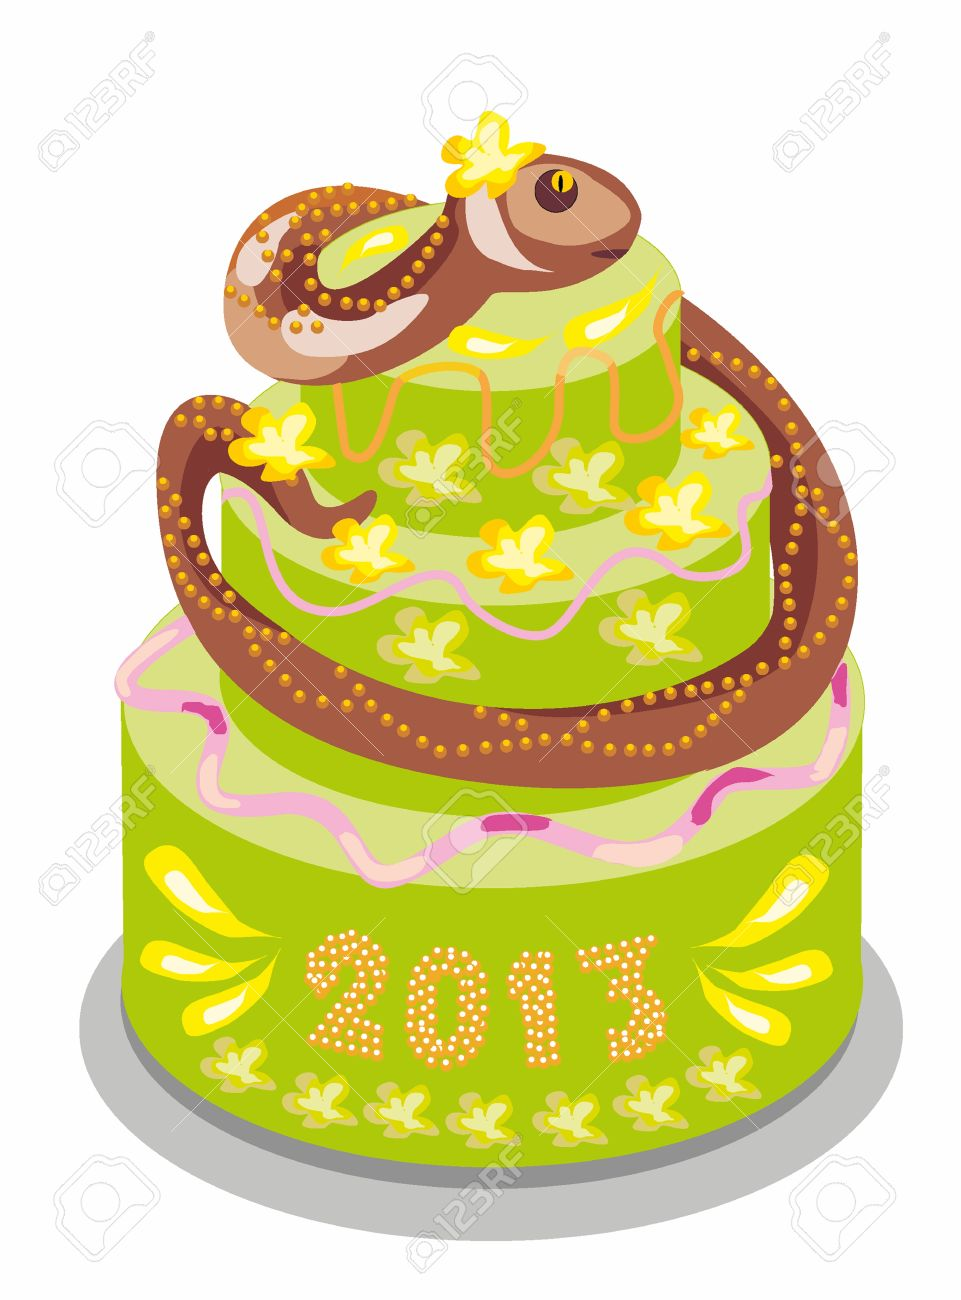 Surprising Chocolate Cake With A Snake Royalty Free Cliparts Vectors And Funny Birthday Cards Online Amentibdeldamsfinfo